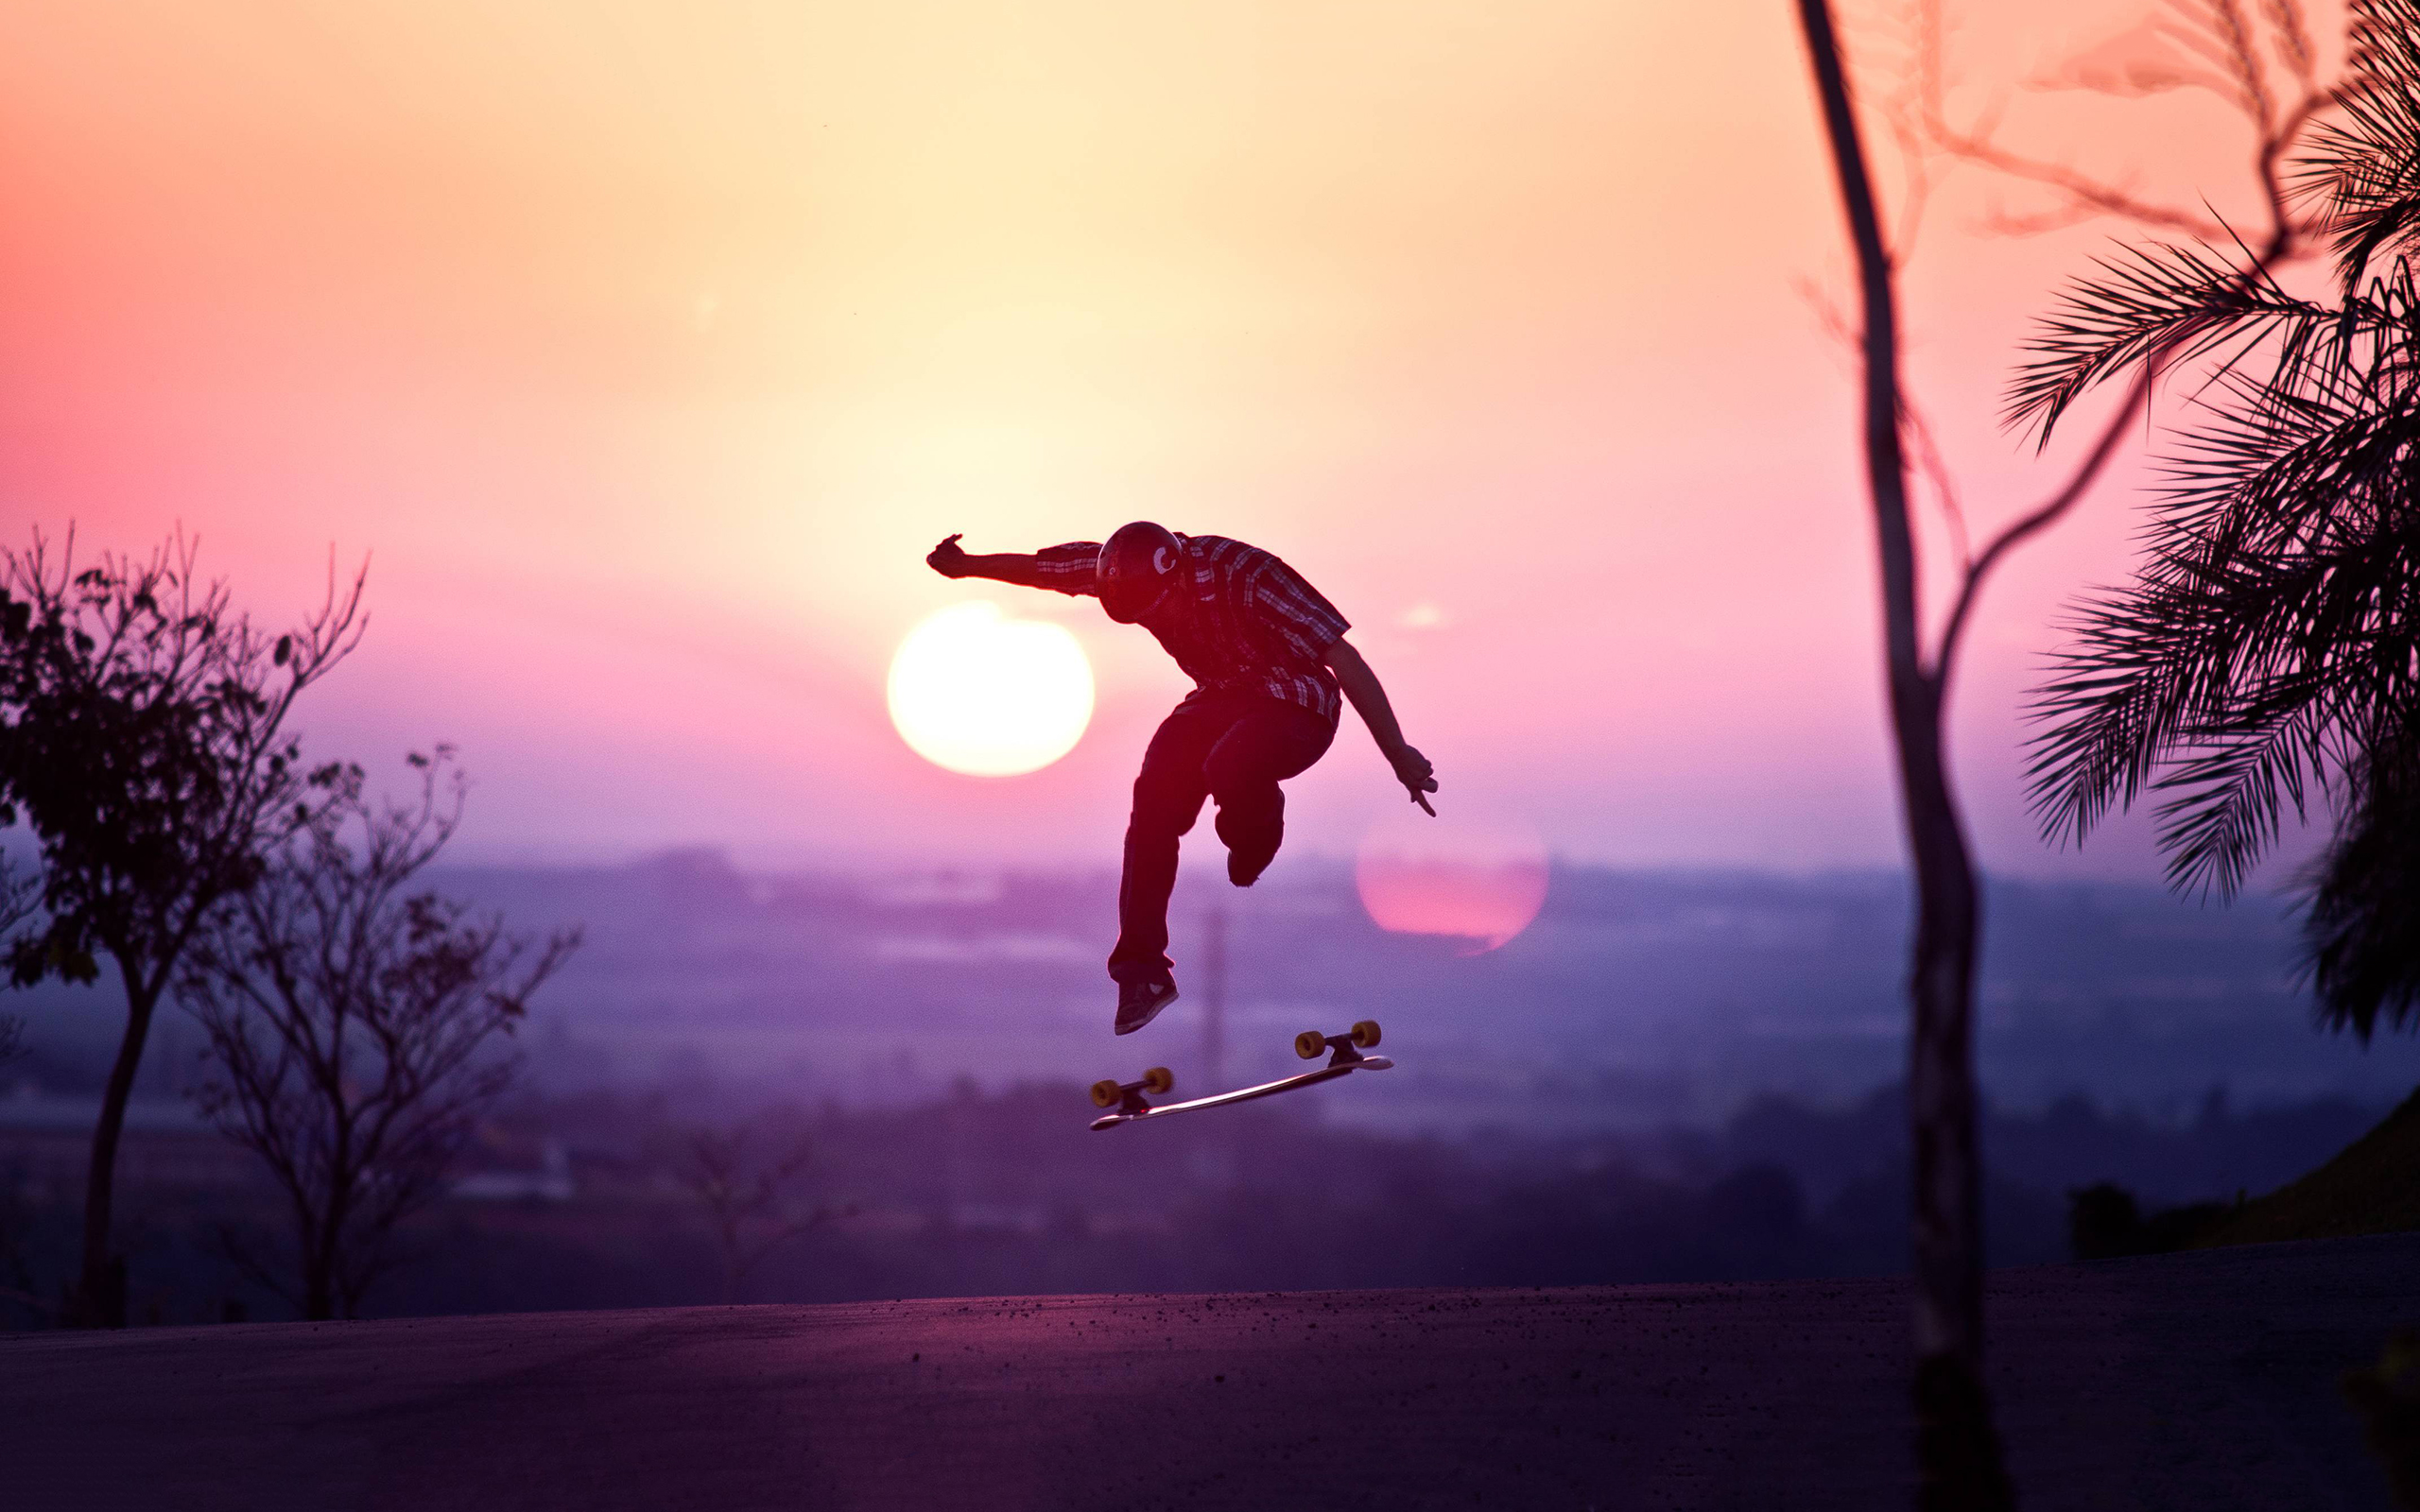 Skateboarding longboard sunset